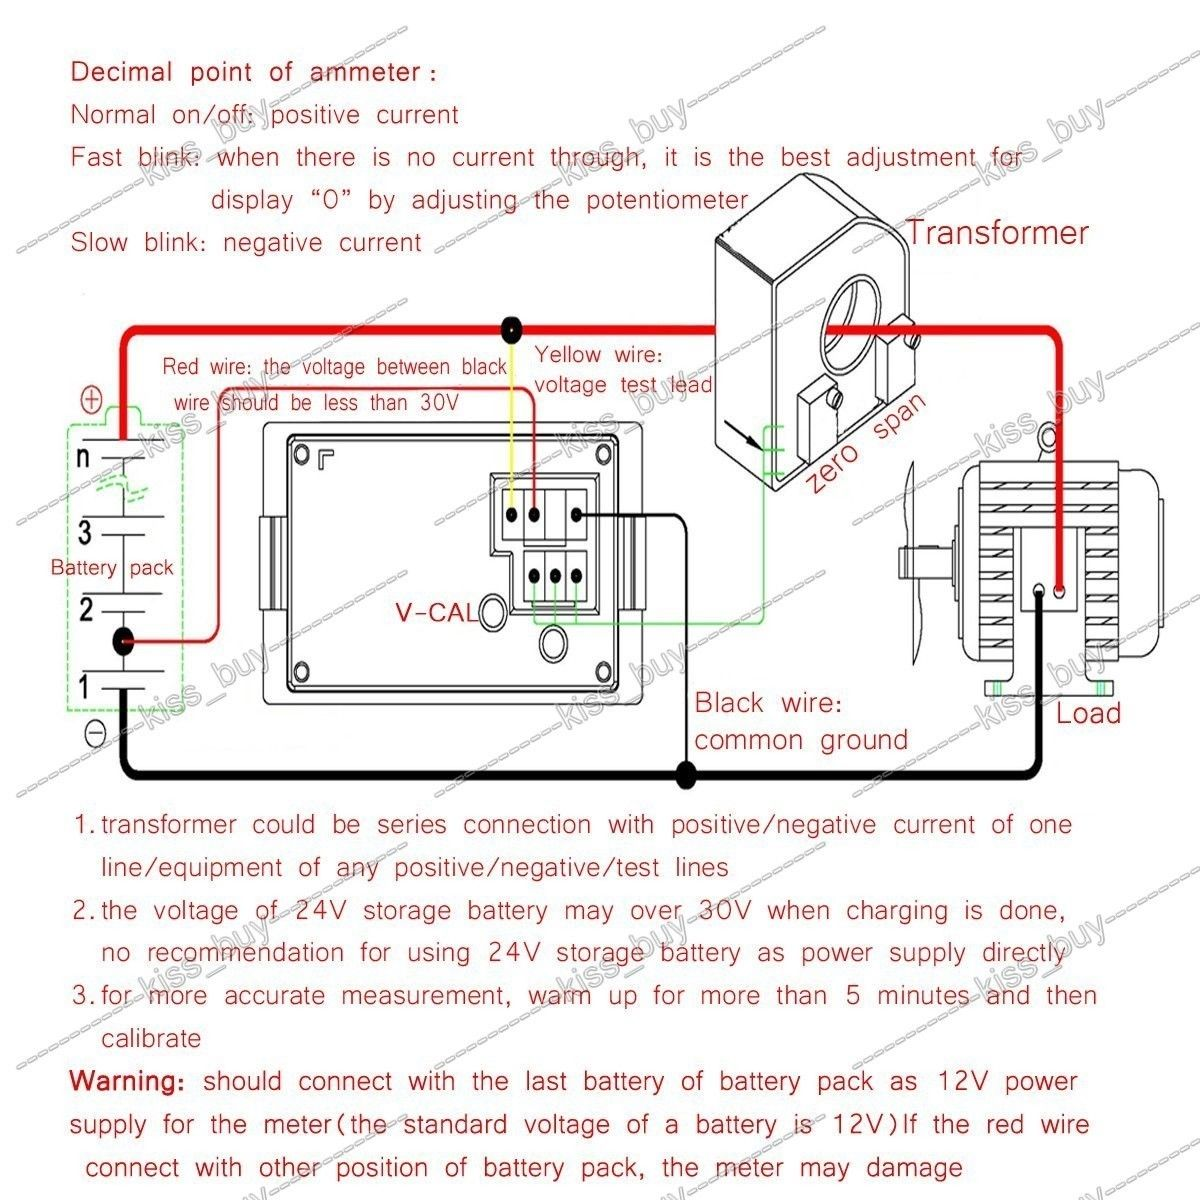 hight resolution of charge meter wiring diagram simple wiring diagram schema electric meter socket wiring diagram amp meter wiring